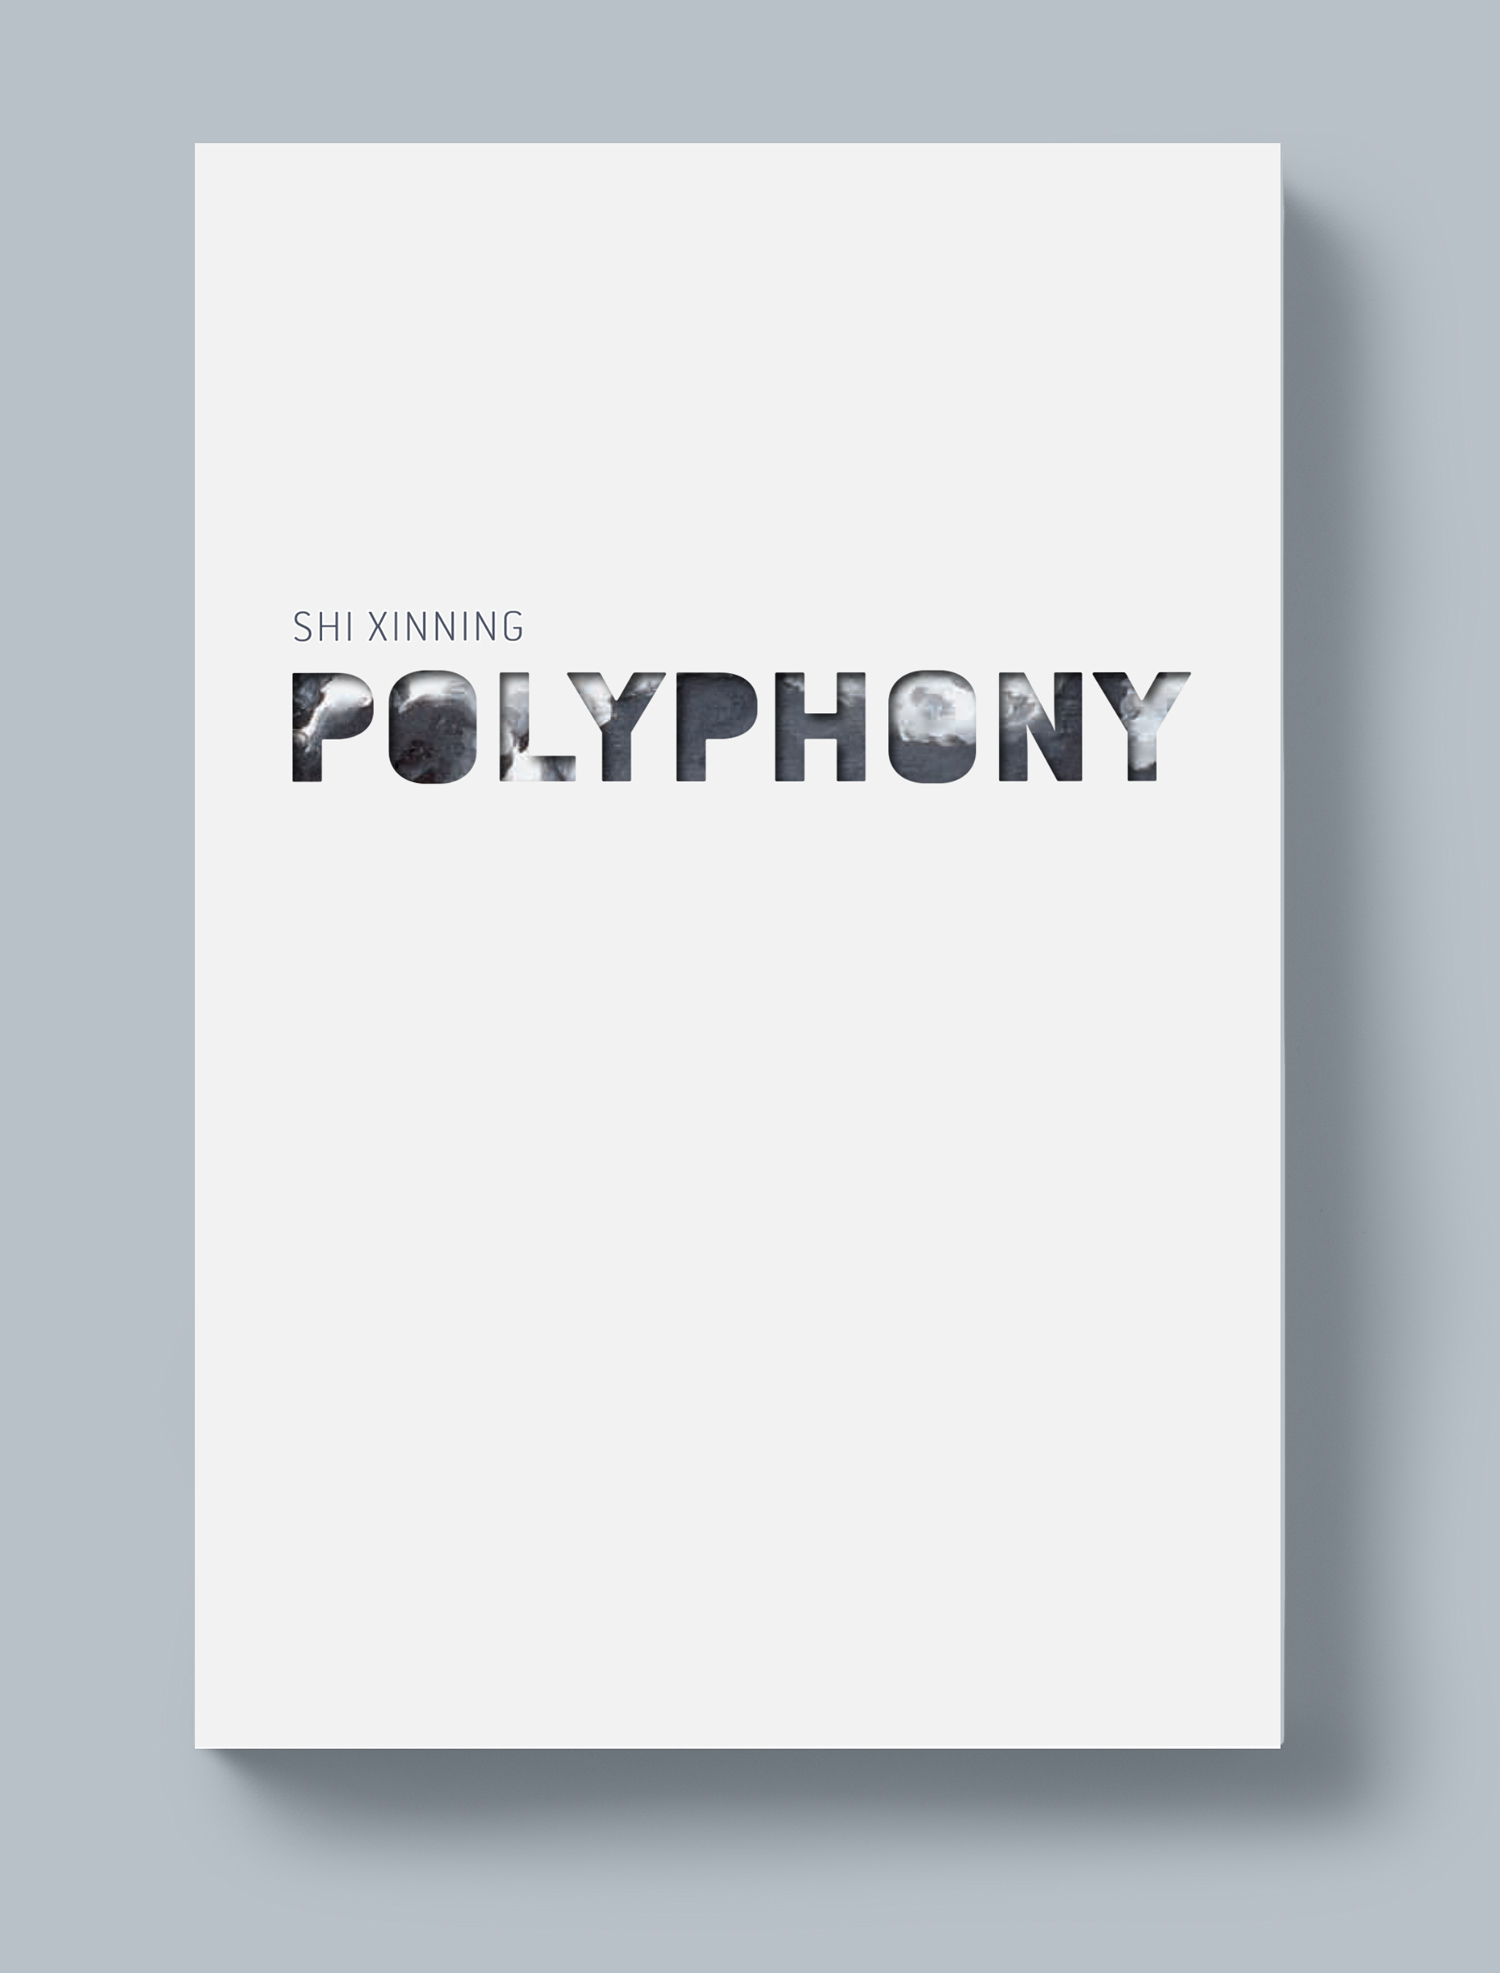 Mario_Dzurila_Polyphony_Book_Art_Catalog_Design_4